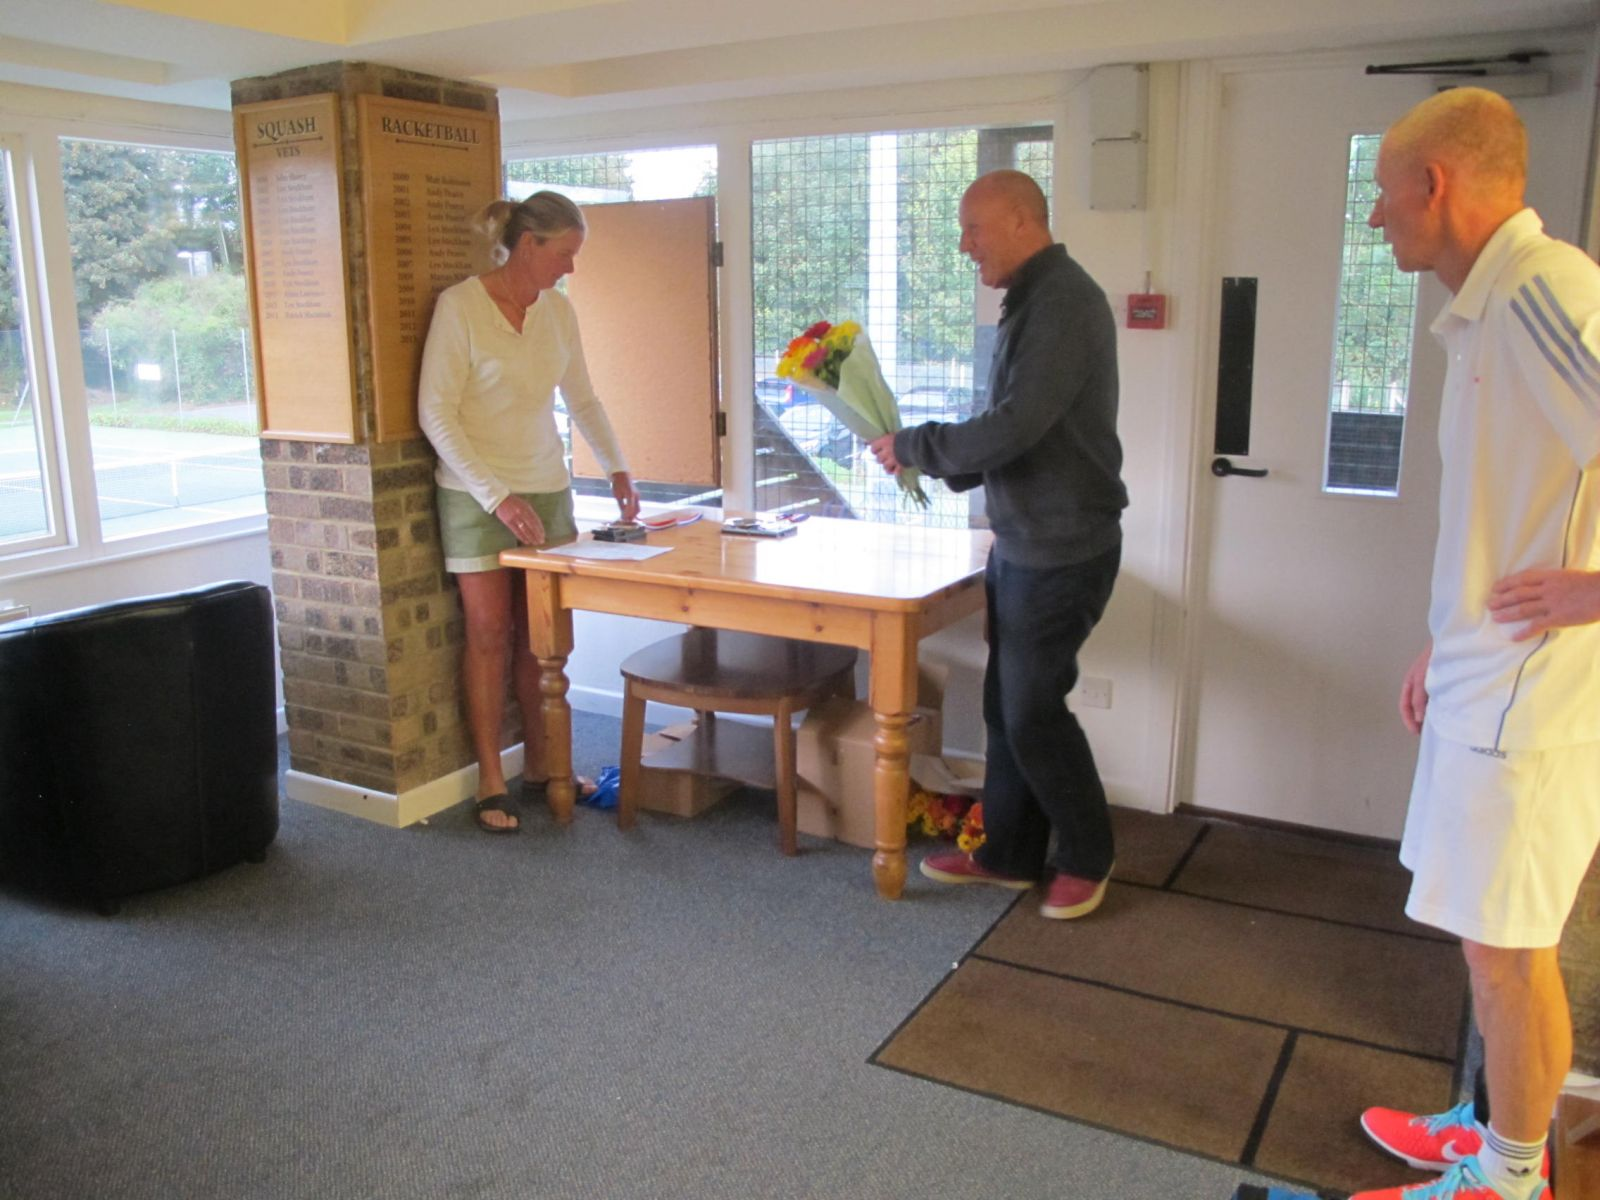 Tennis Chairman Mike Henderson presenting Sarah Skidmore, Tournament Organiser with a bouquet of flowers for all her hard work.